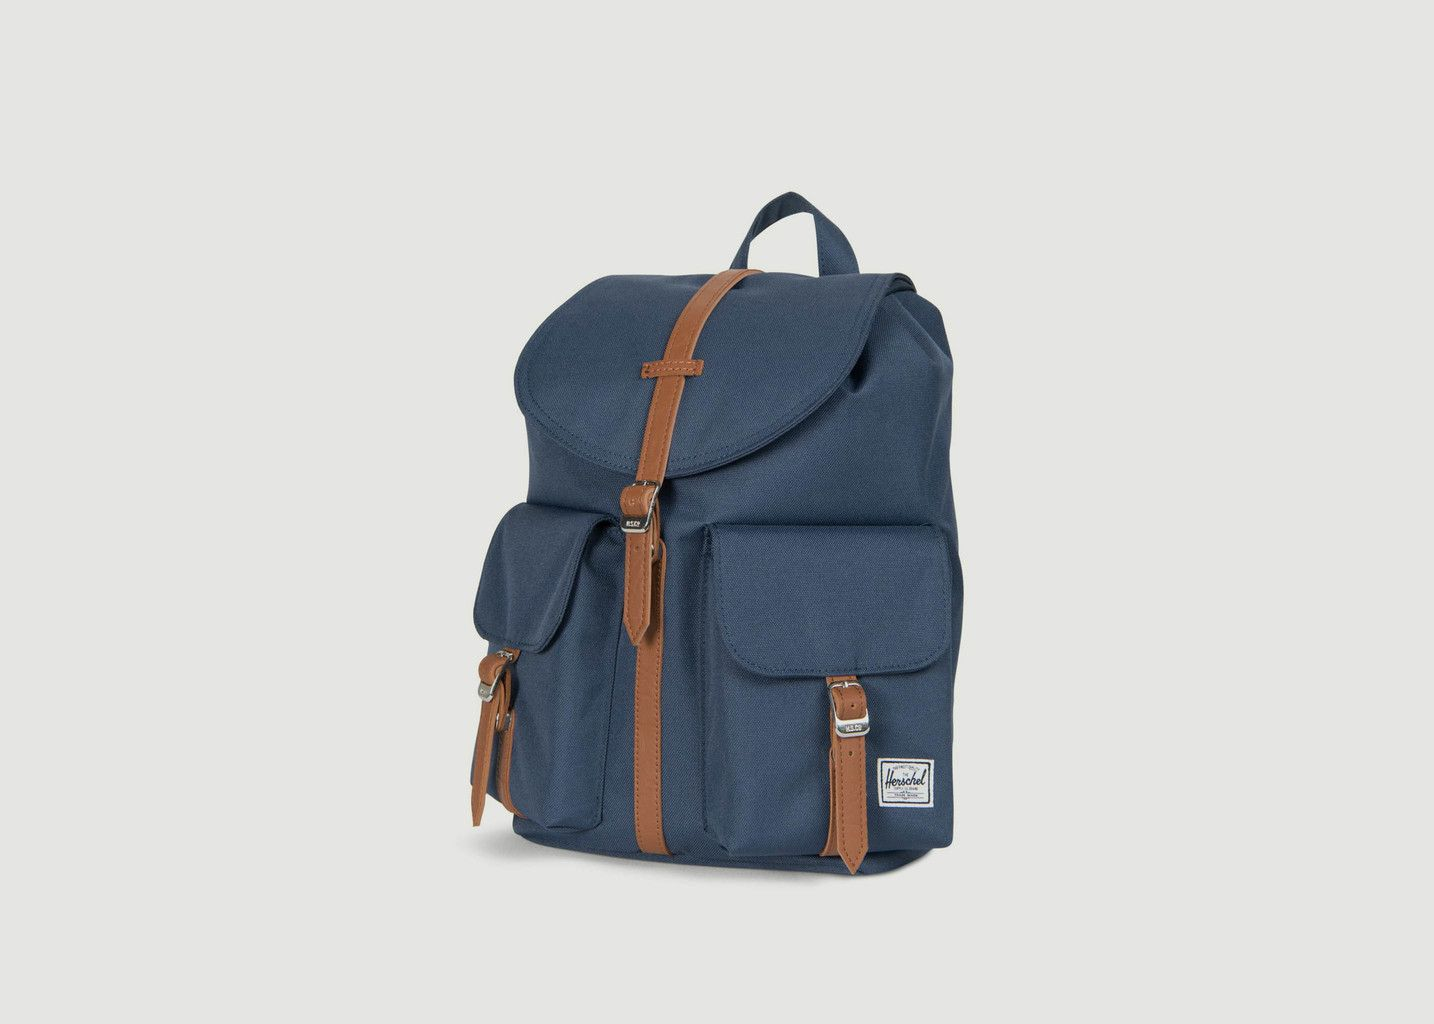 af9df35a0aa Dawson XS Backpack Navy Blue Herschel Supply Studio